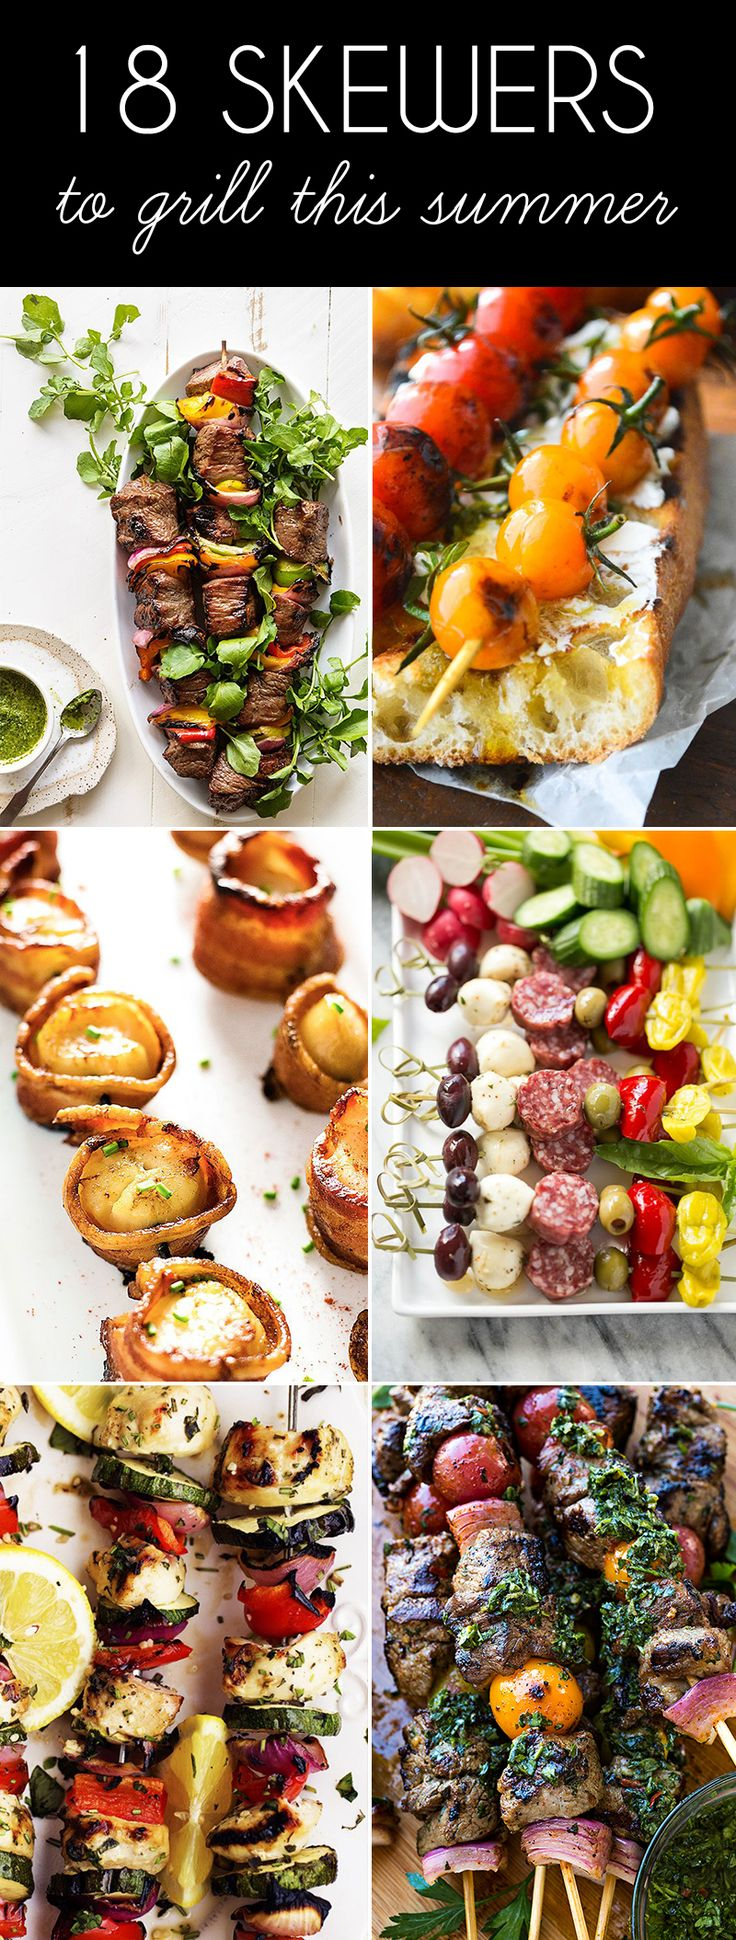 Warmer weather has arrived, which means summer grilling season is here! There's nothing more fun than eating stuff off of a stick, so check out these tasty skewers and kebabs to inspire your summer BBQ cooking. - DivineCaroline.com